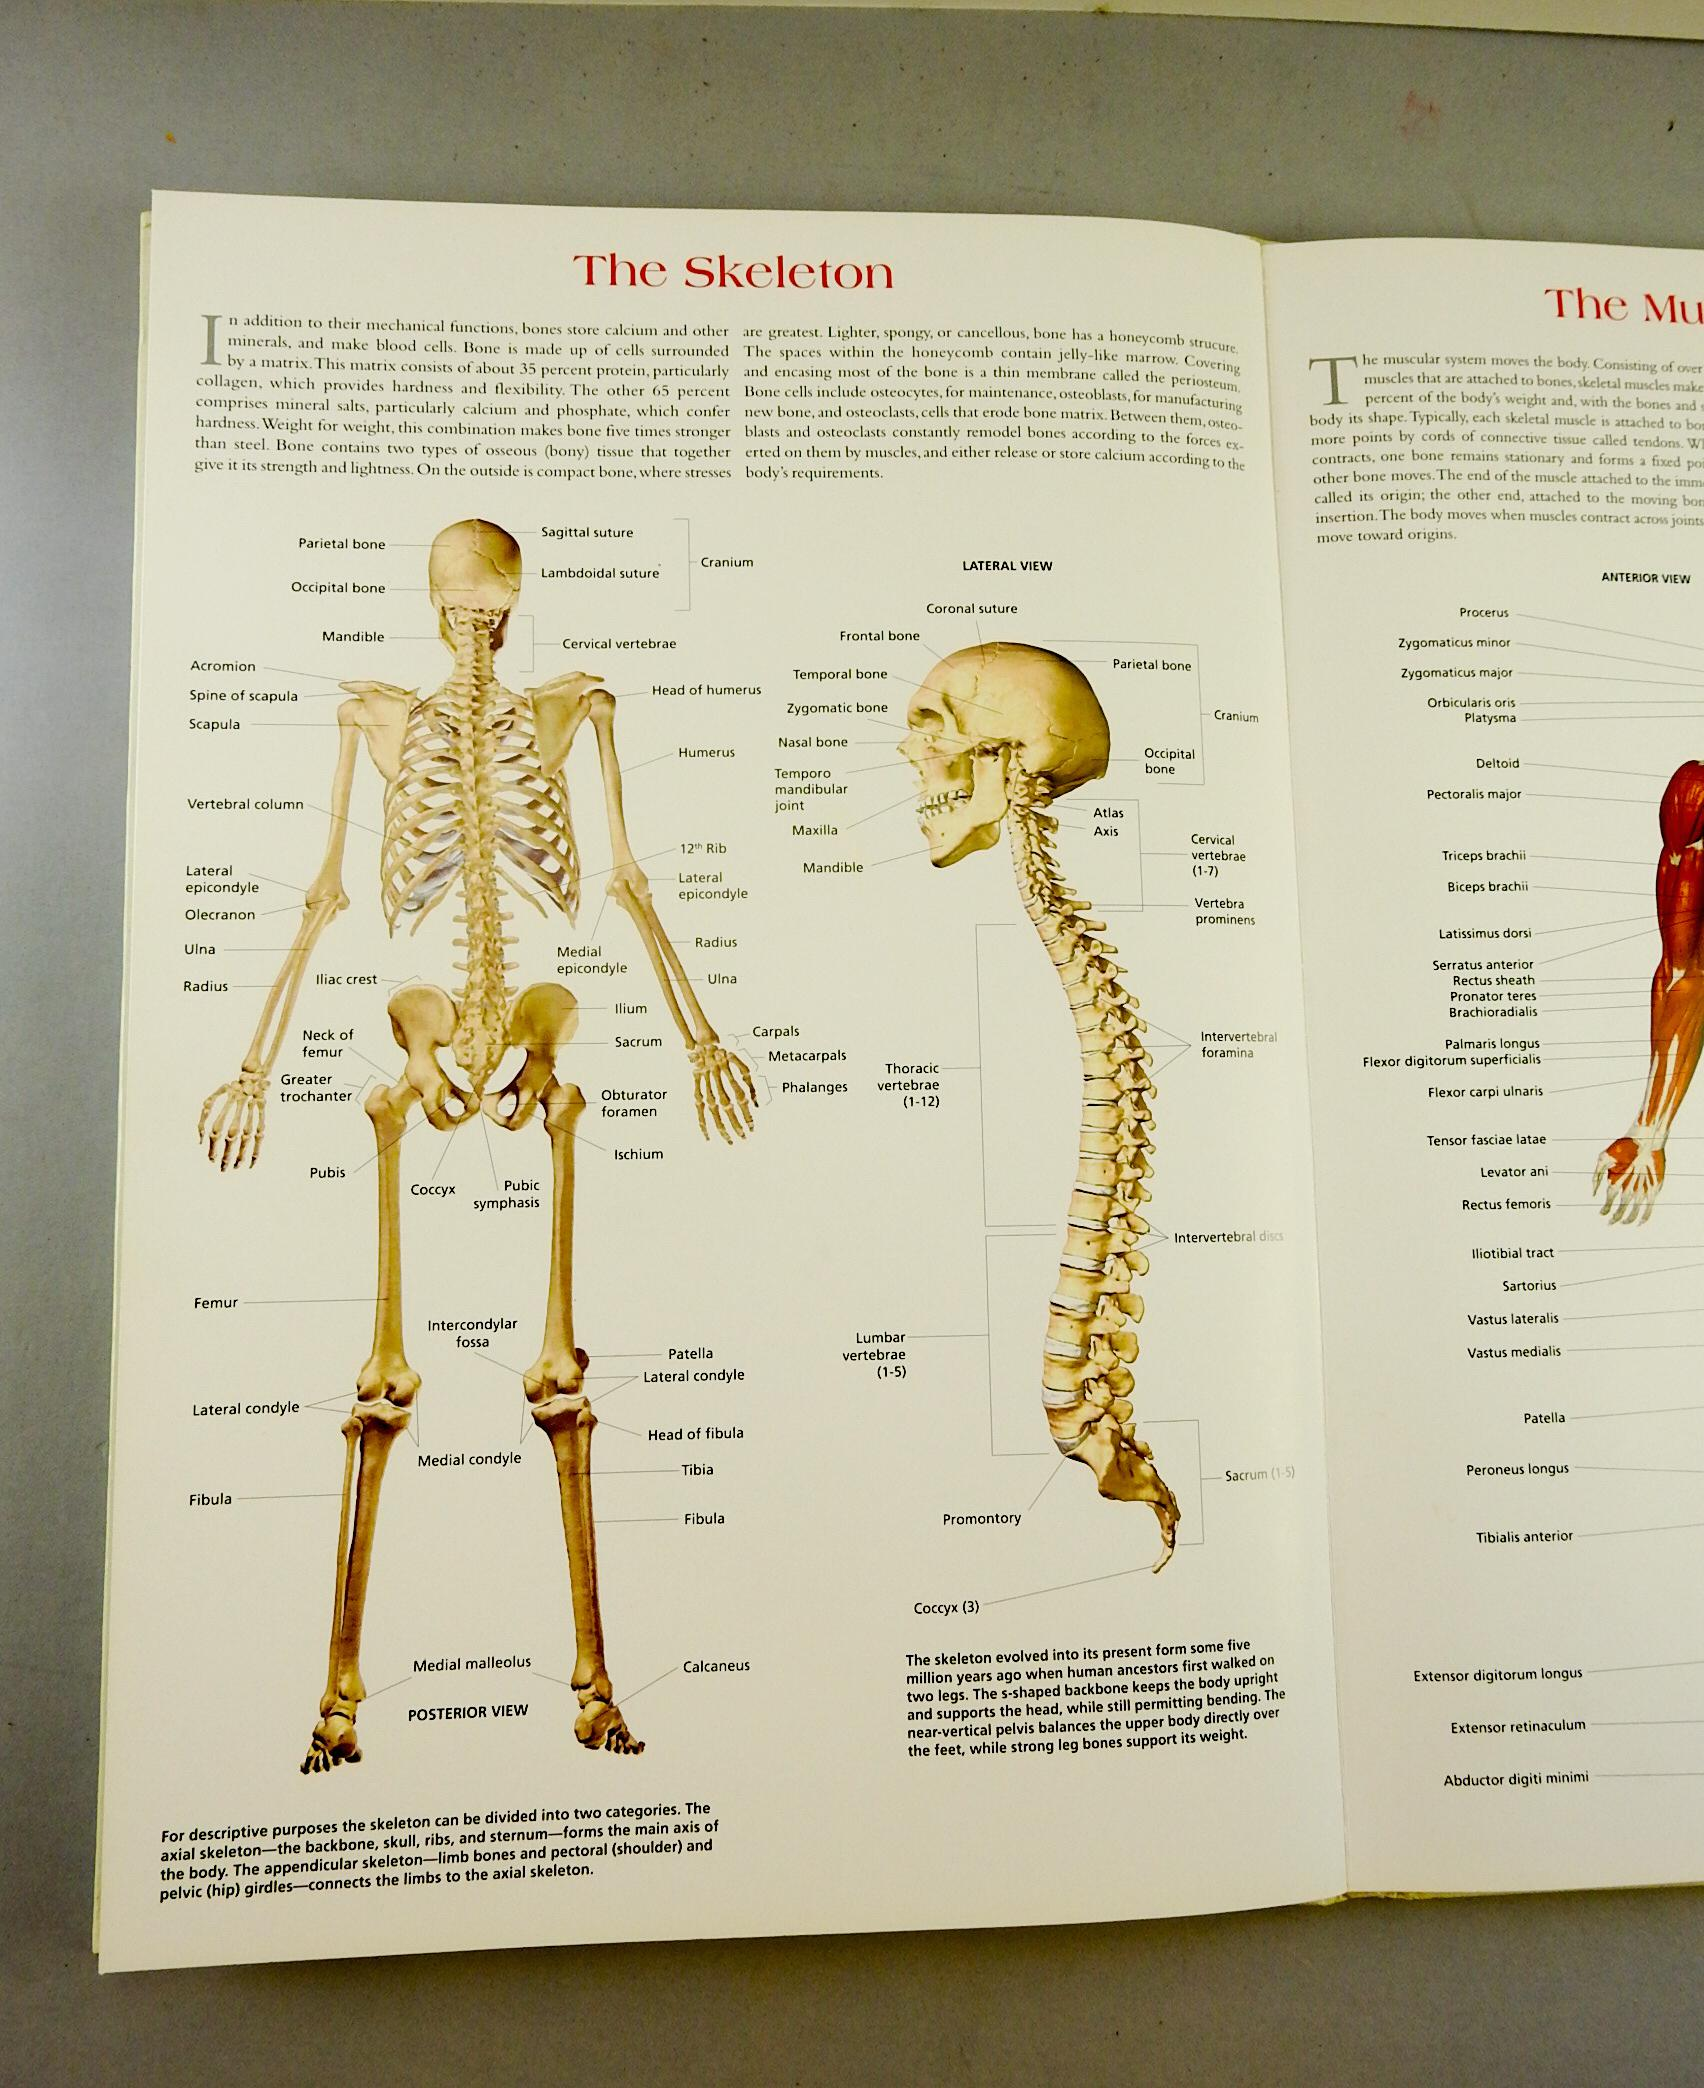 Wallchart of human anatomy book for sale image also chairish rh